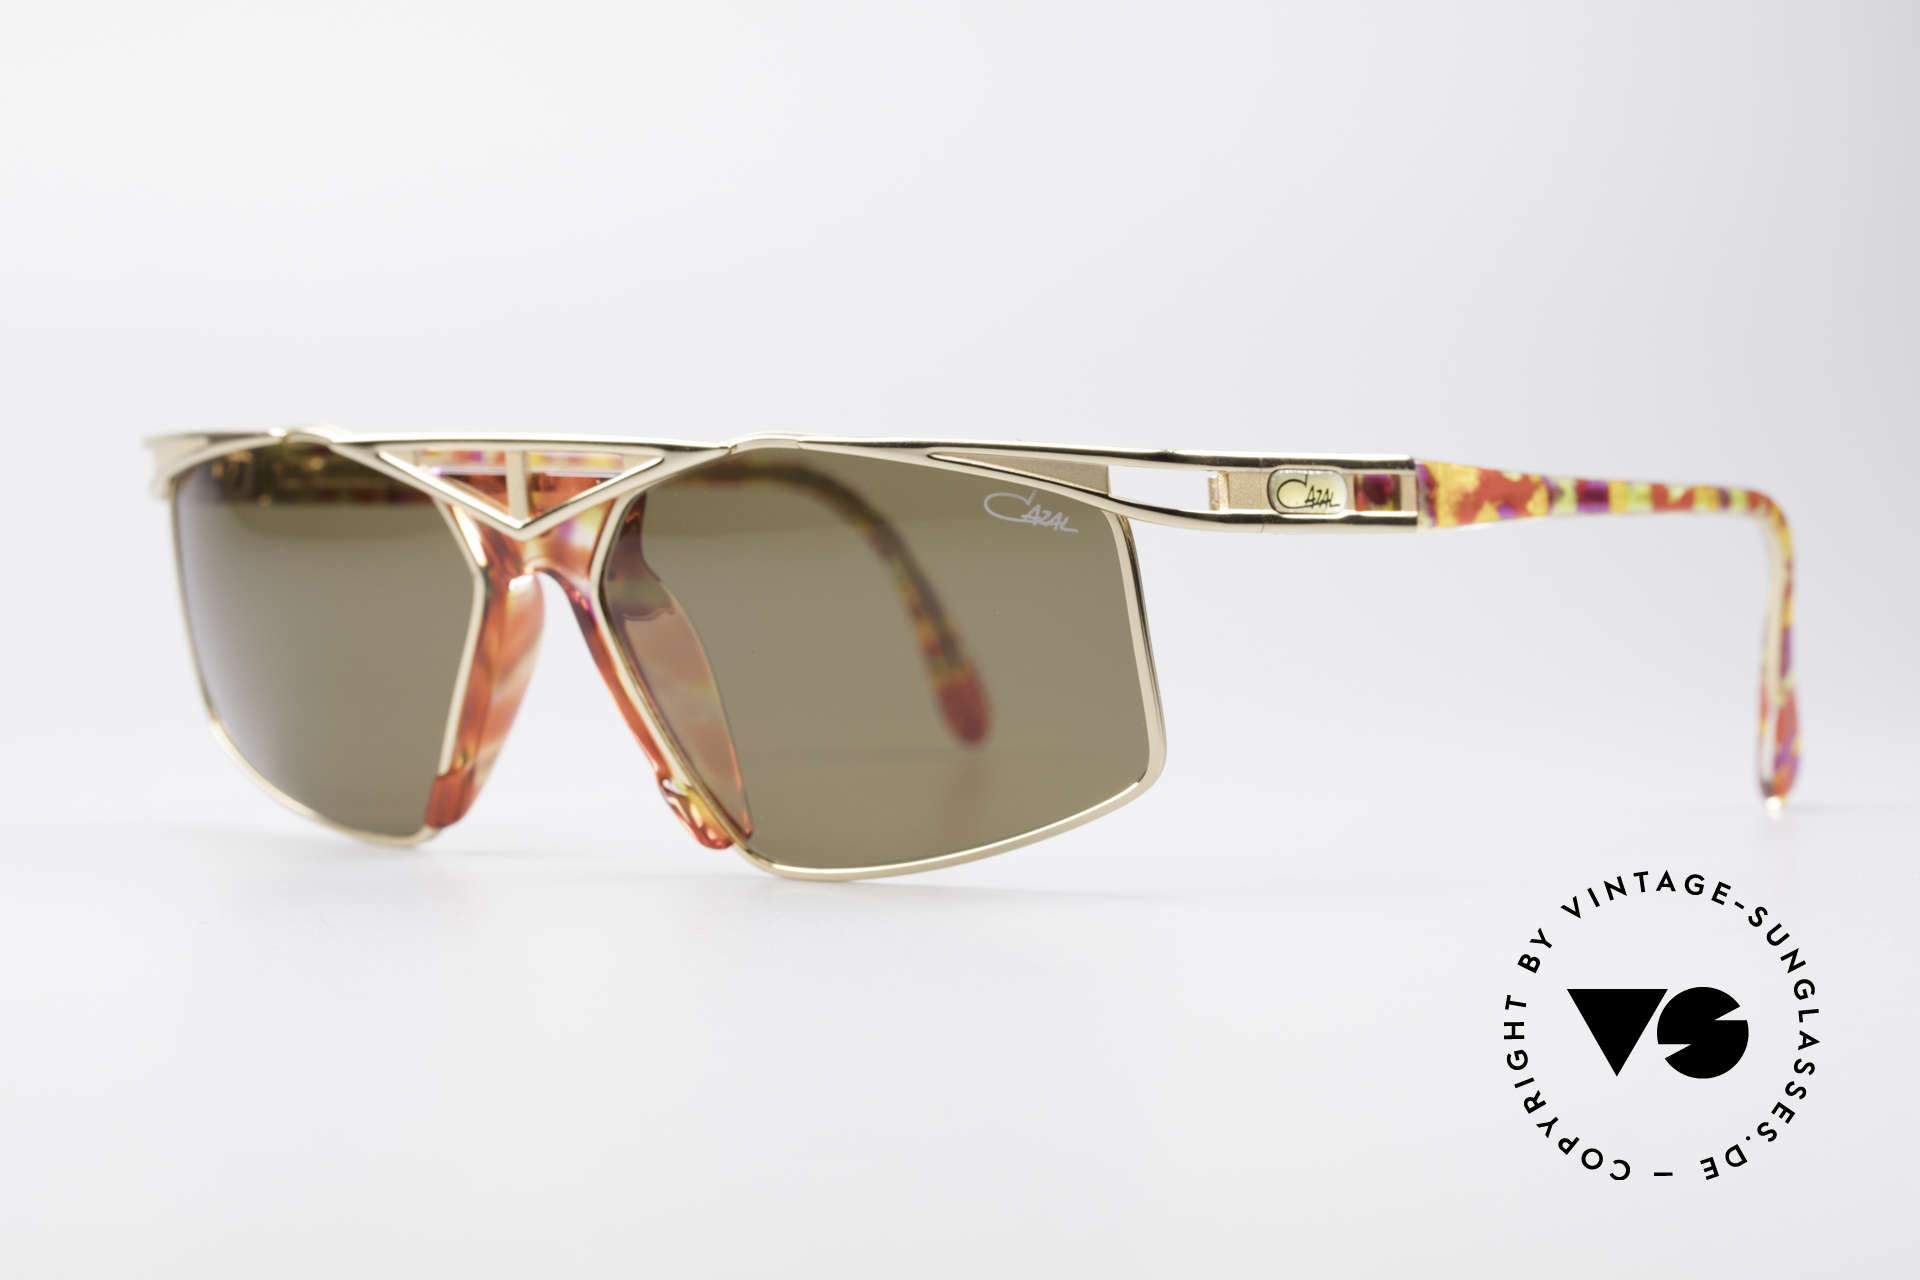 Cazal 962 Sporty Vintage Shades, grand combination of color concept, design & materials, Made for Men and Women